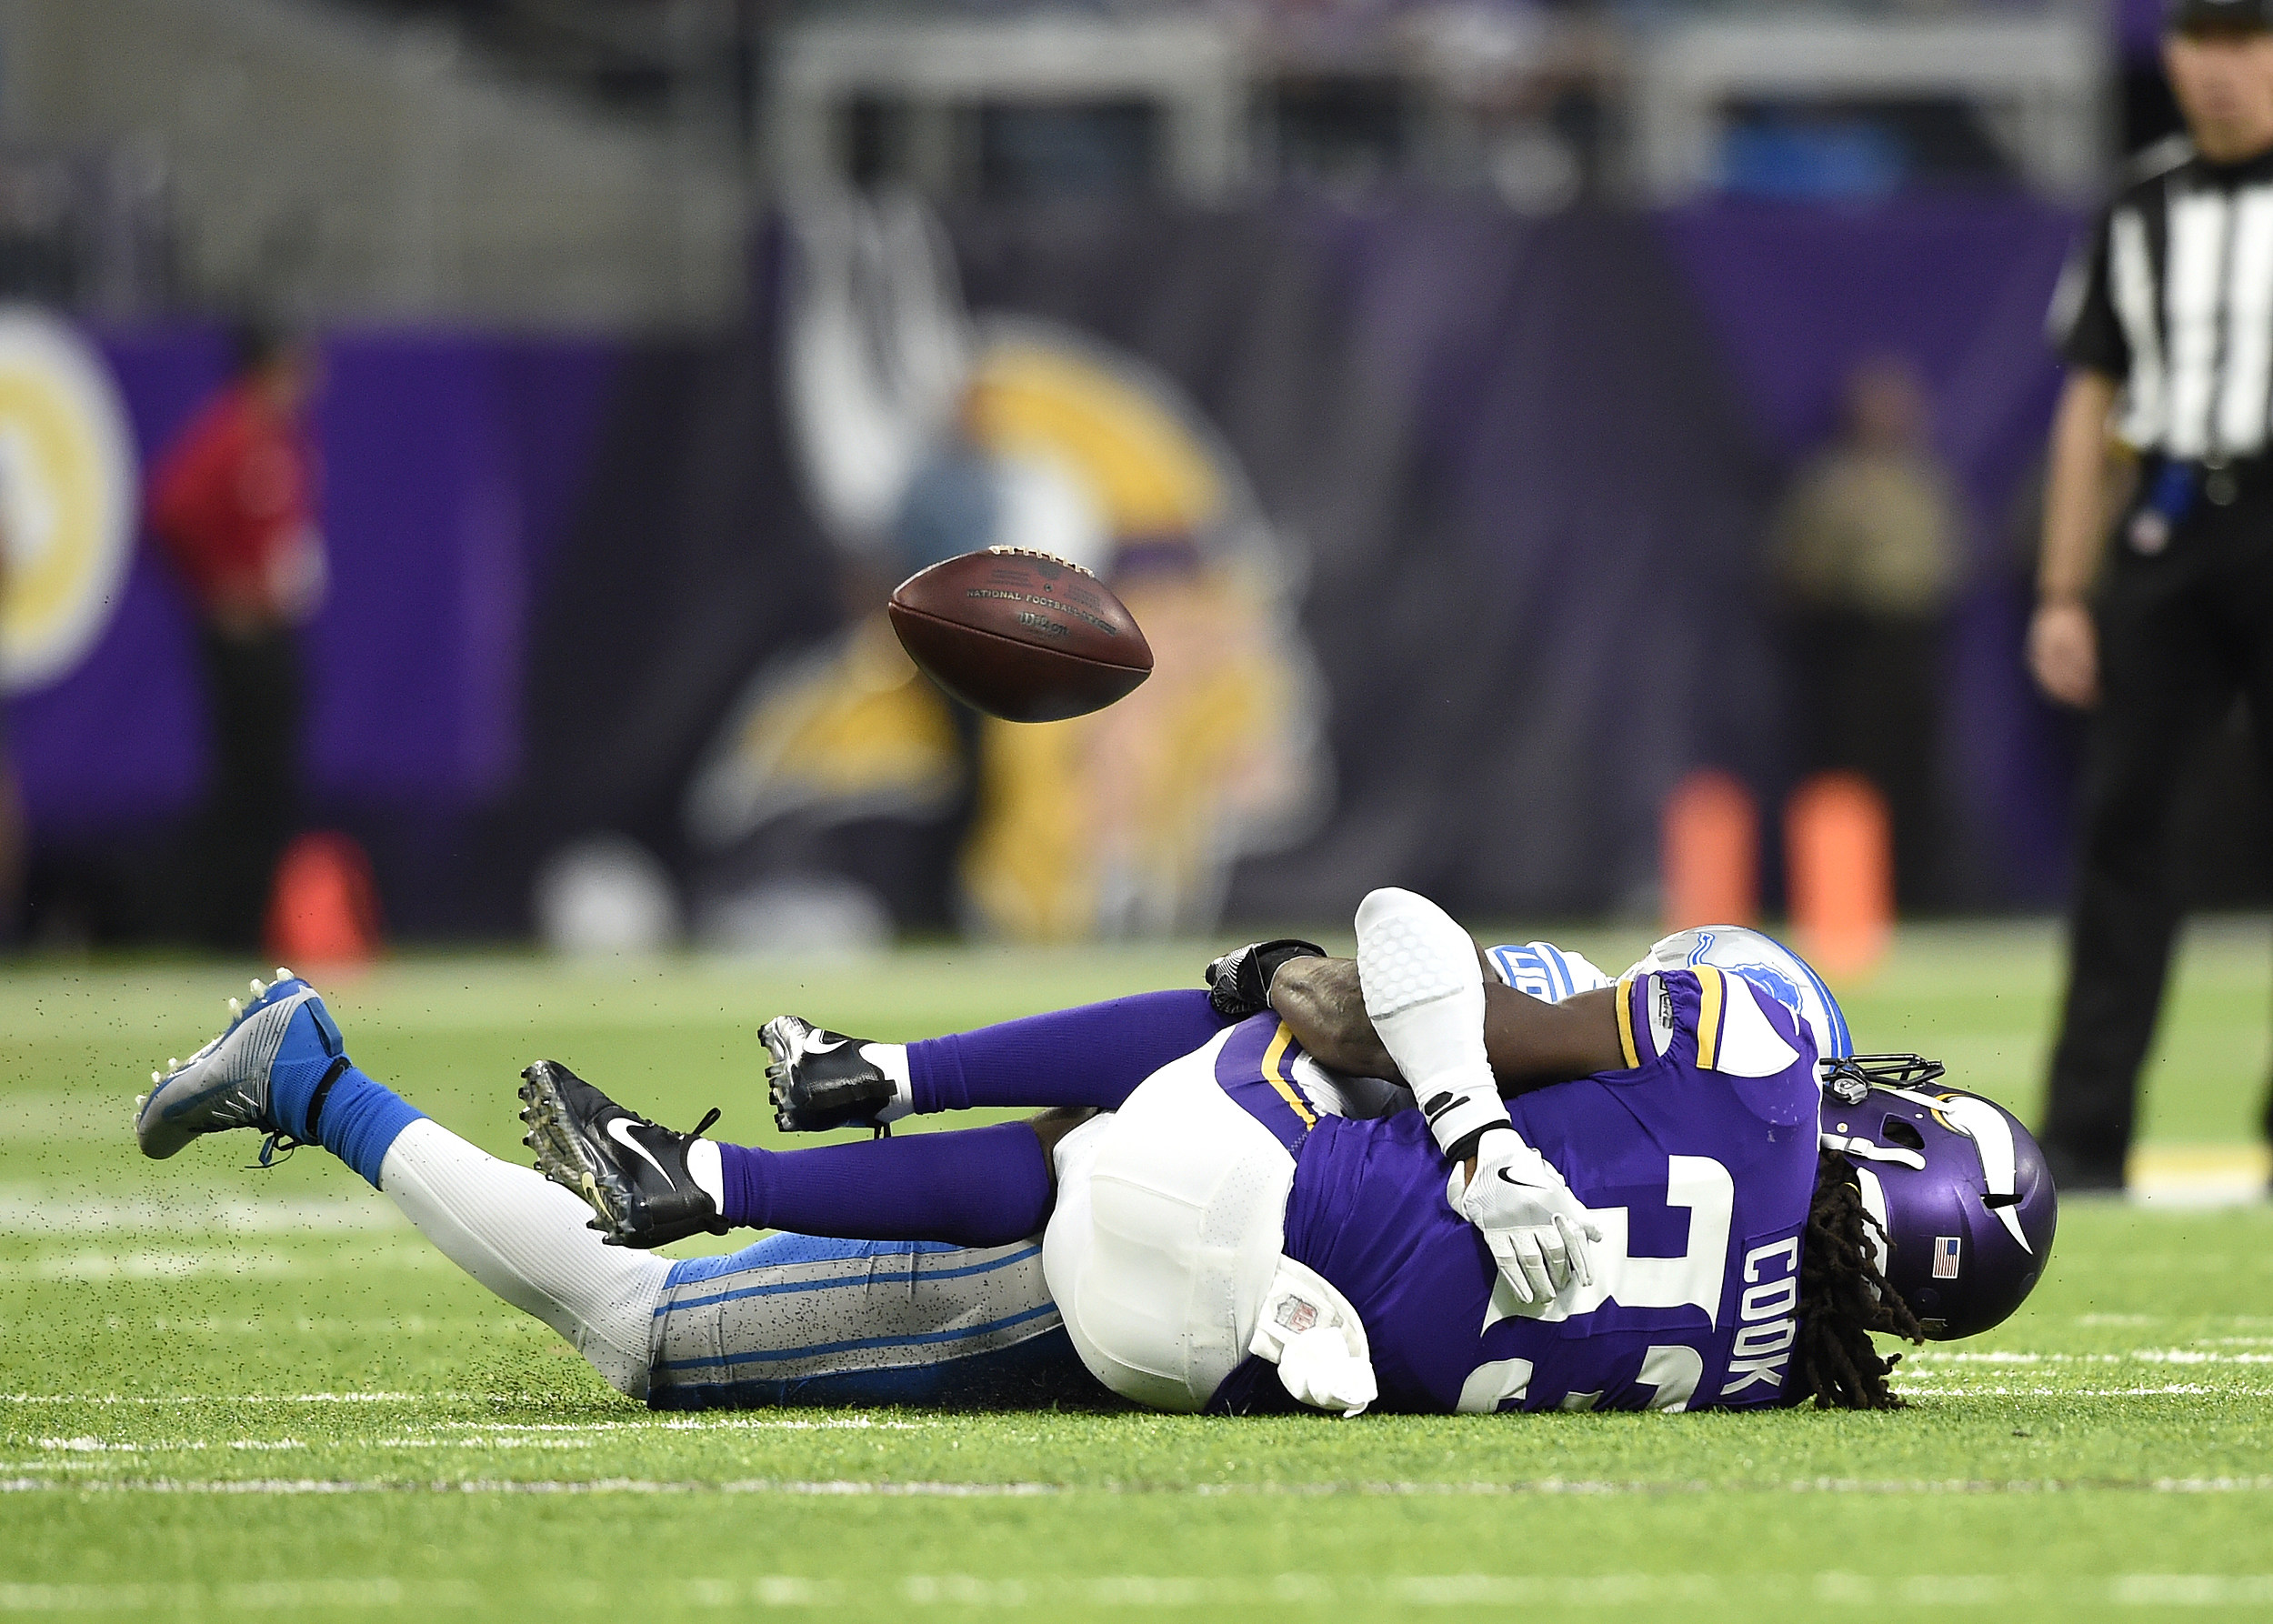 Dalvin Cook out following non-contact knee injury